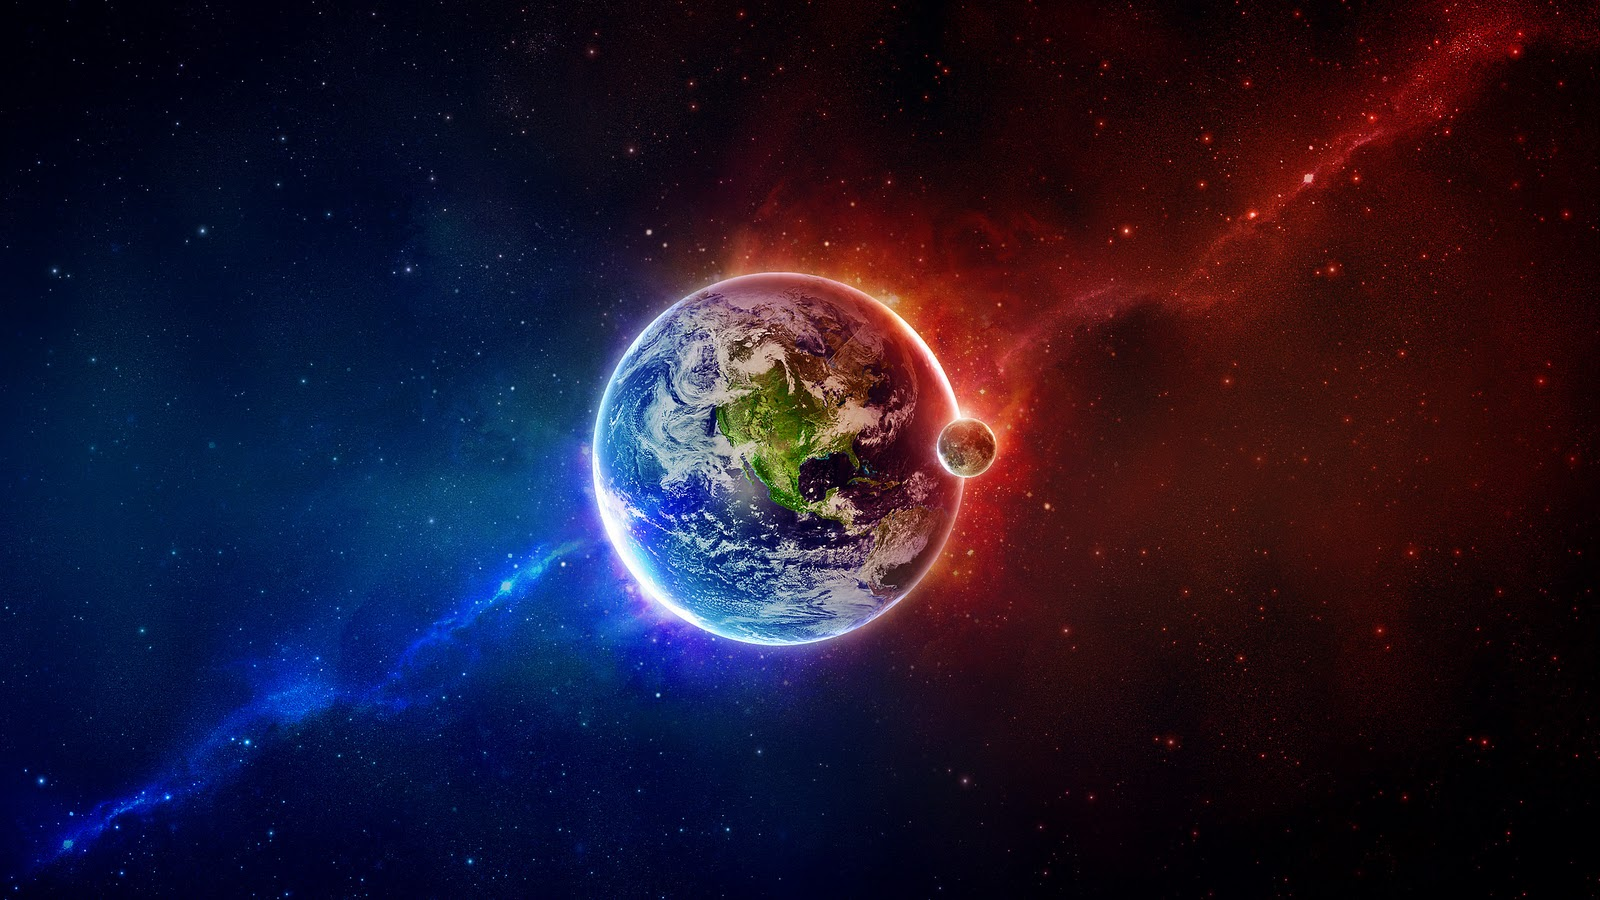 Download Wallpaper Mobile Space - abstract-art-earth-space-blue-red-hd-epic-298899  You Should Have_597049.jpg